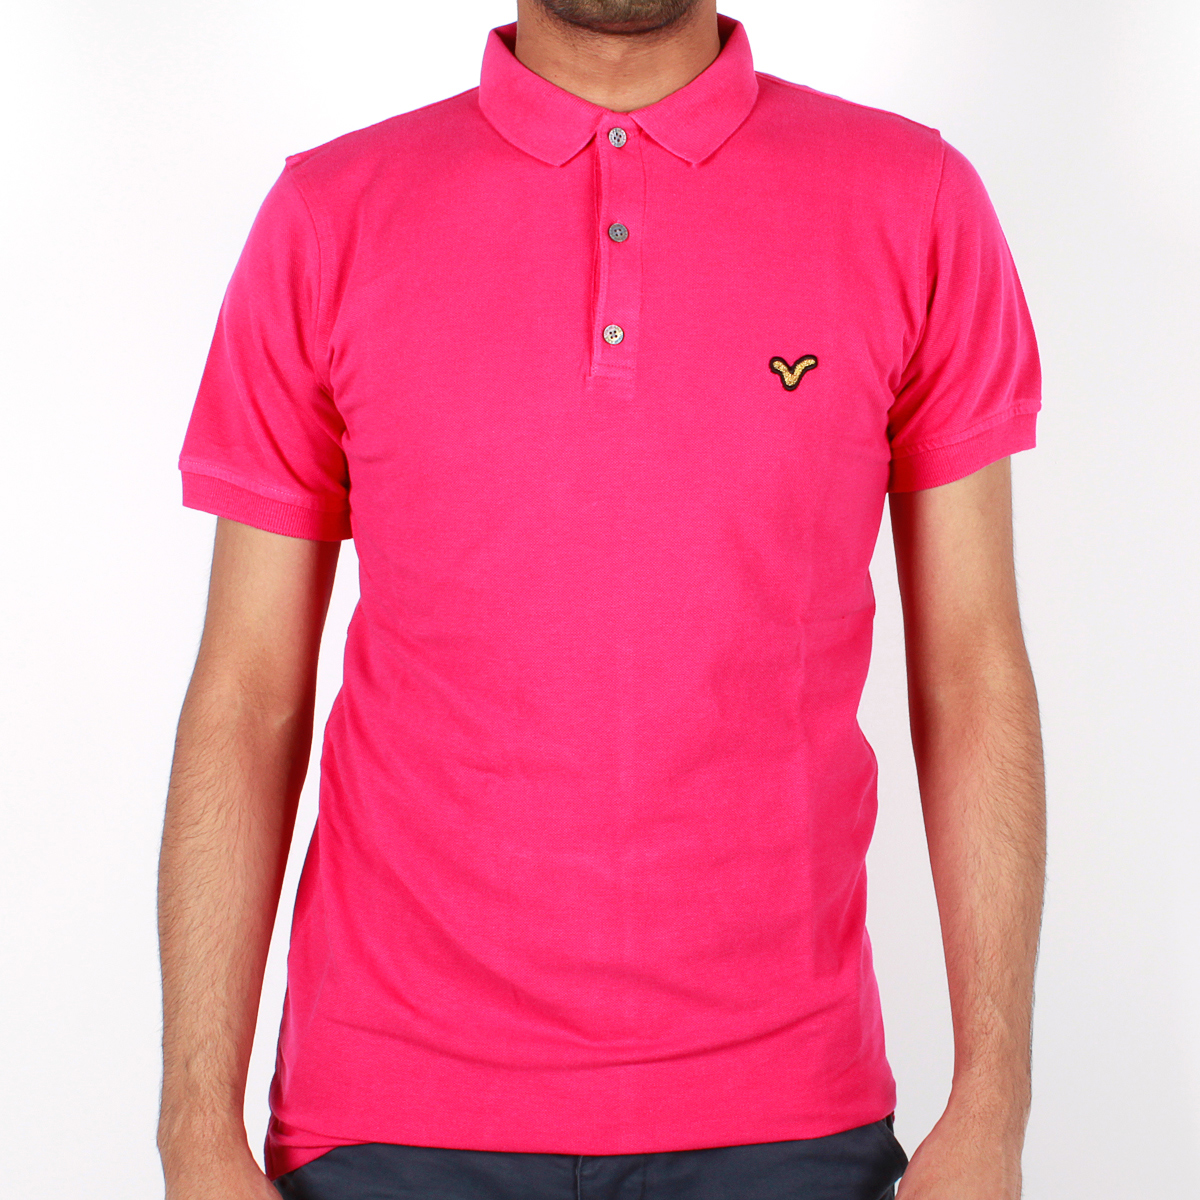 New-Mens-Voi-Jeans-Enzo-Short-Sleeve-Ribbed-Polo-Fuchsia-Free-P-P-DD